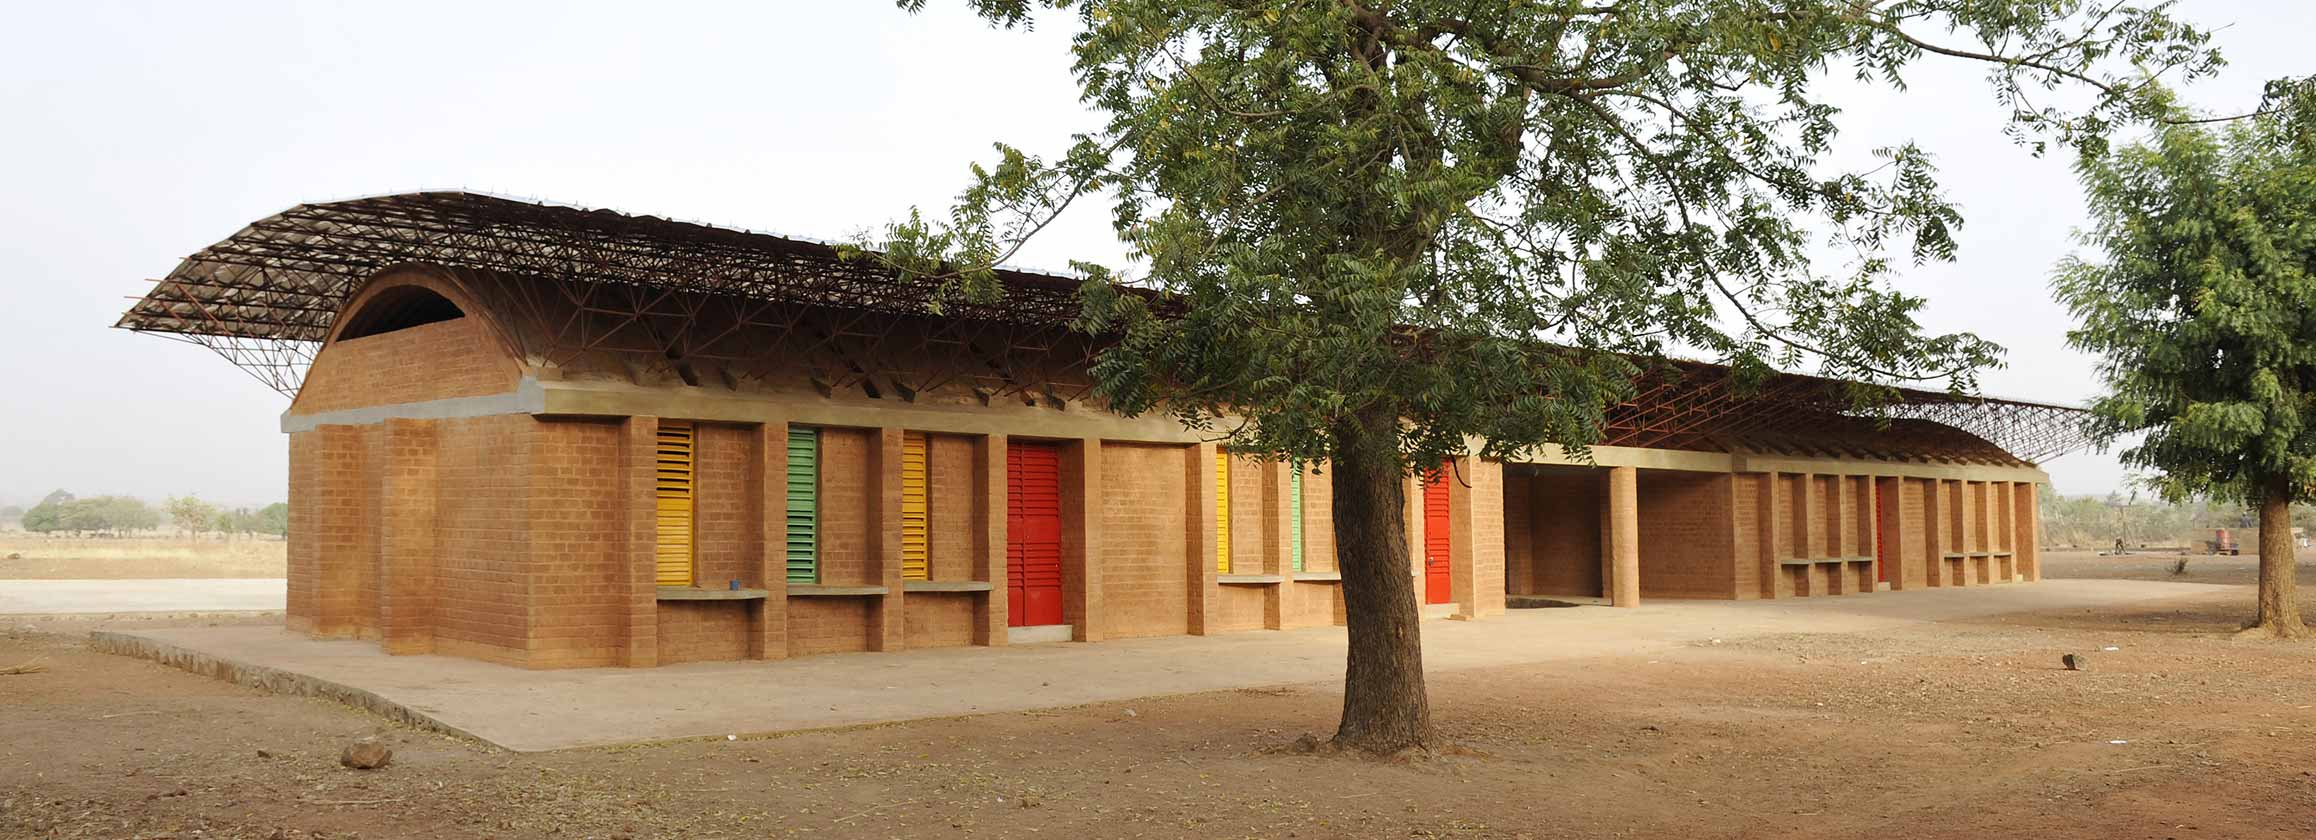 K r architecture school extension gando burkina faso for Architecture africaine